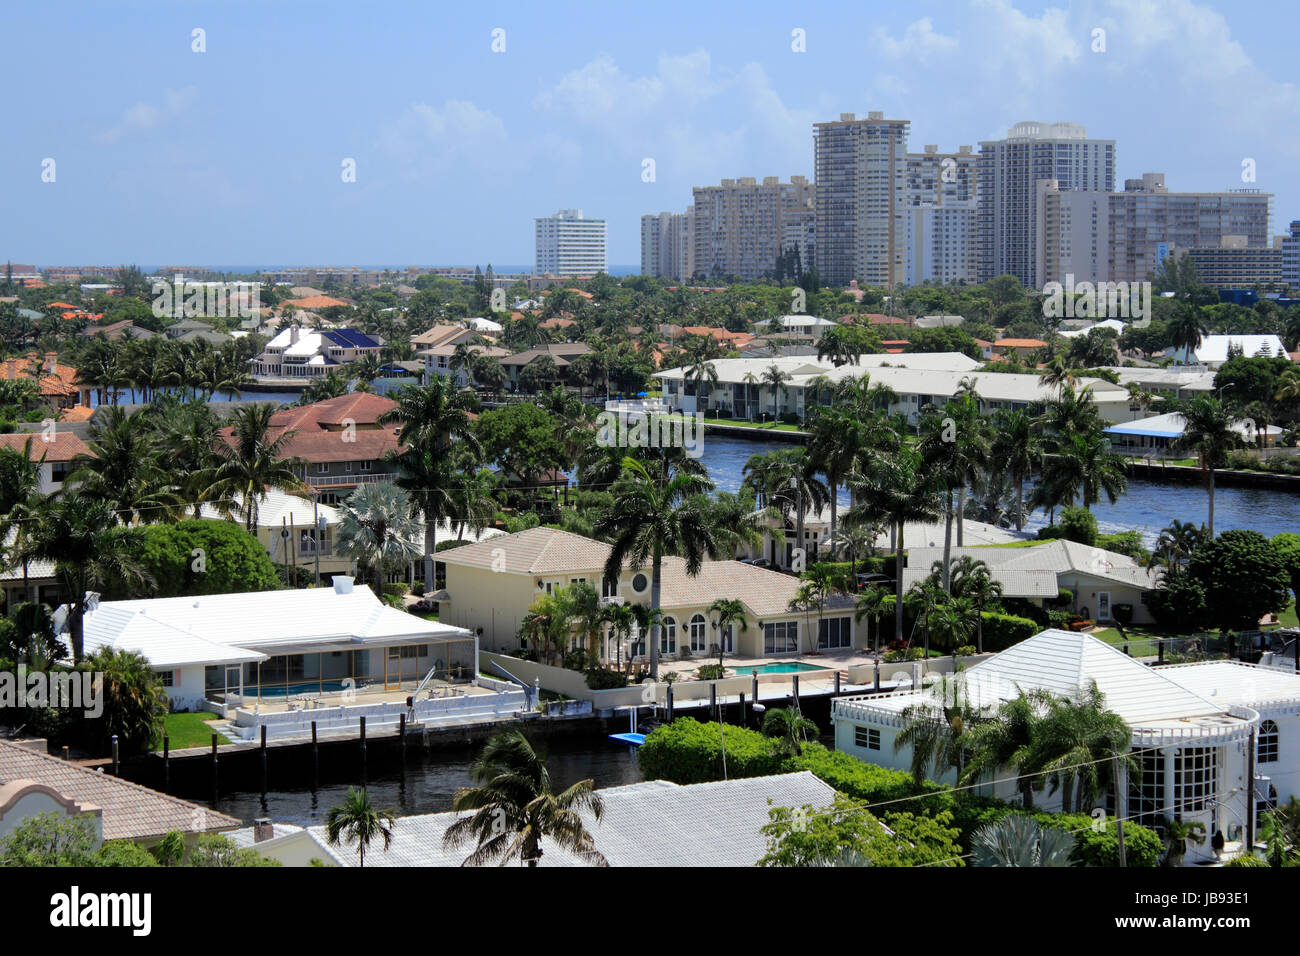 FORT LAUDERDALE, FLORIDA - JUNE 18, 2013: High up day view of upscale residential homes and condominiums with the - Stock Image